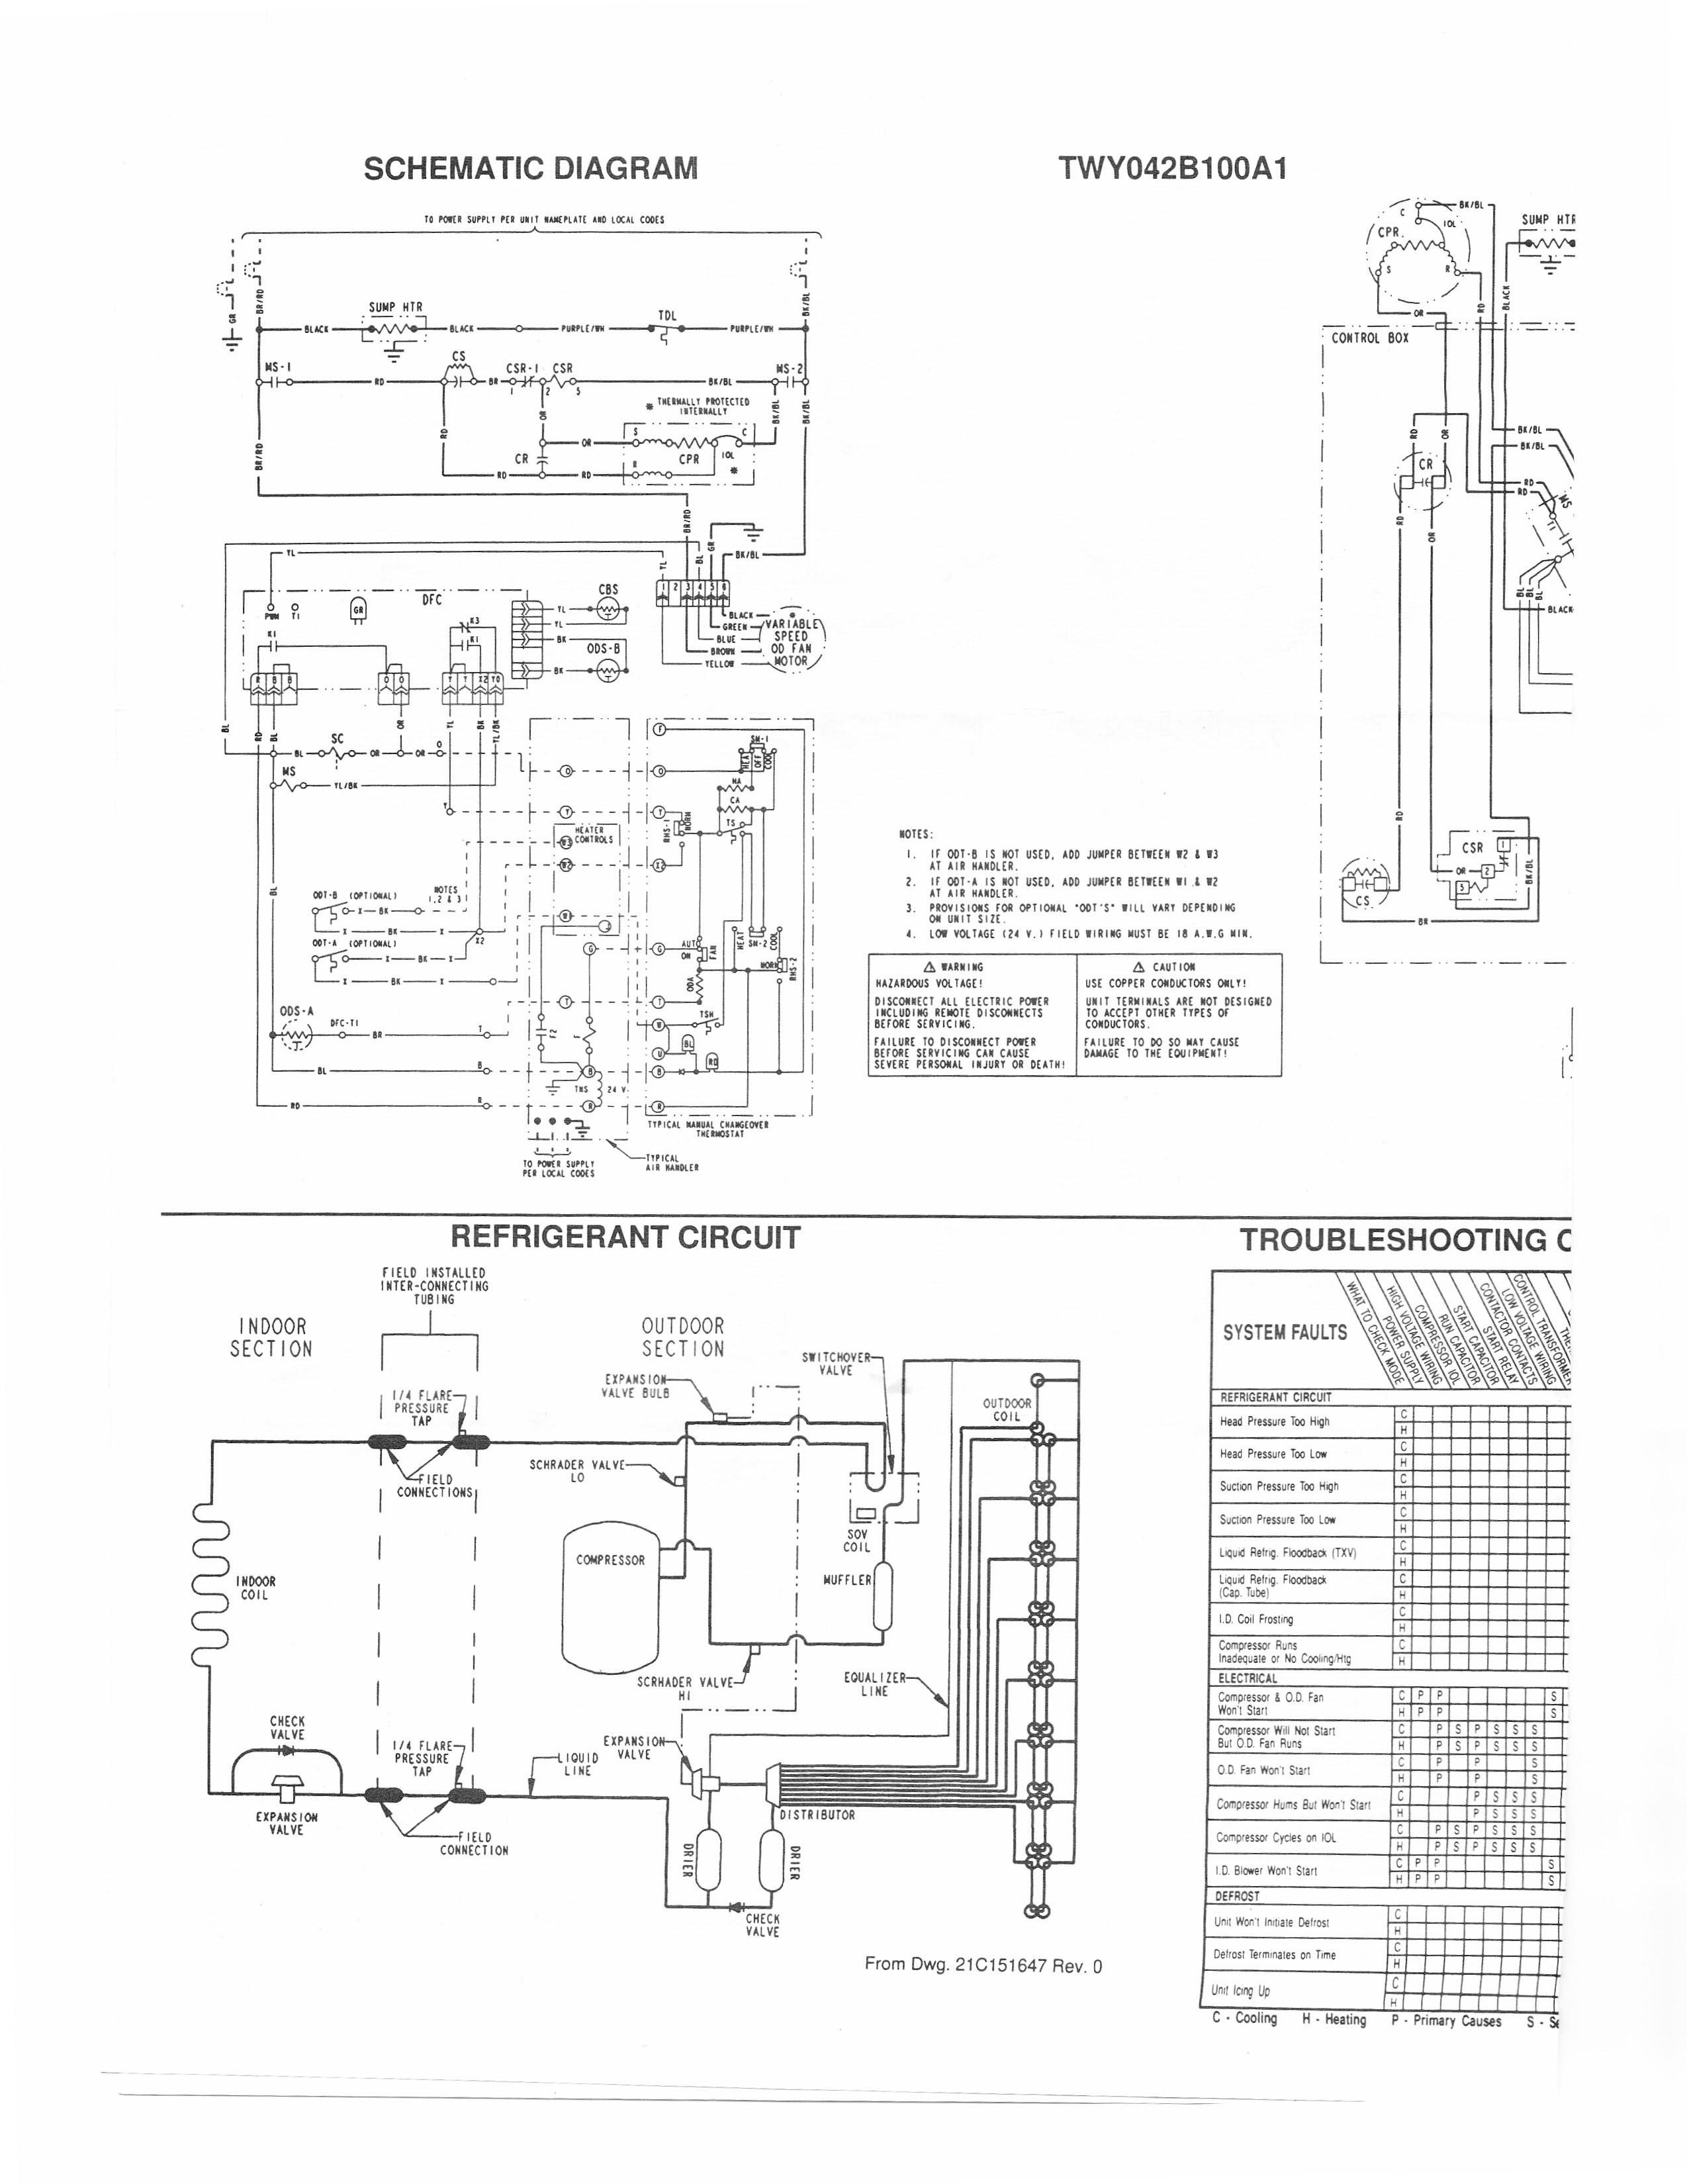 D7F0F3 Trane Wiring Diagrams Model Twe | Wiring LibraryWiring Library